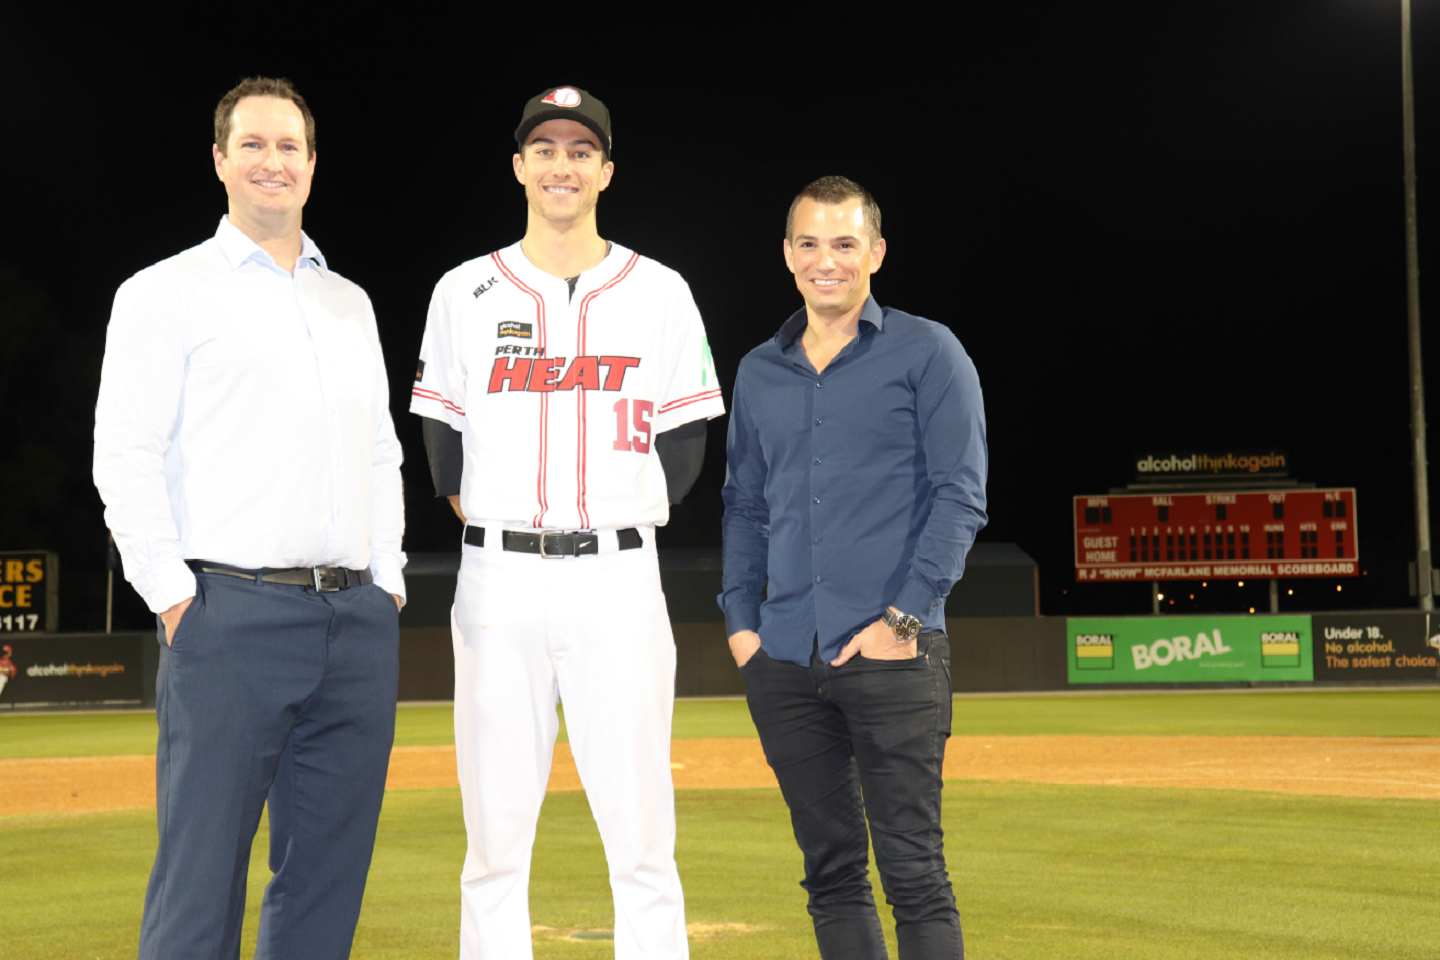 Bwa Chief Executive Lachlan Dale With Perth Heat Pitcher Tom Bailey And New Chairman Rory Vassallo